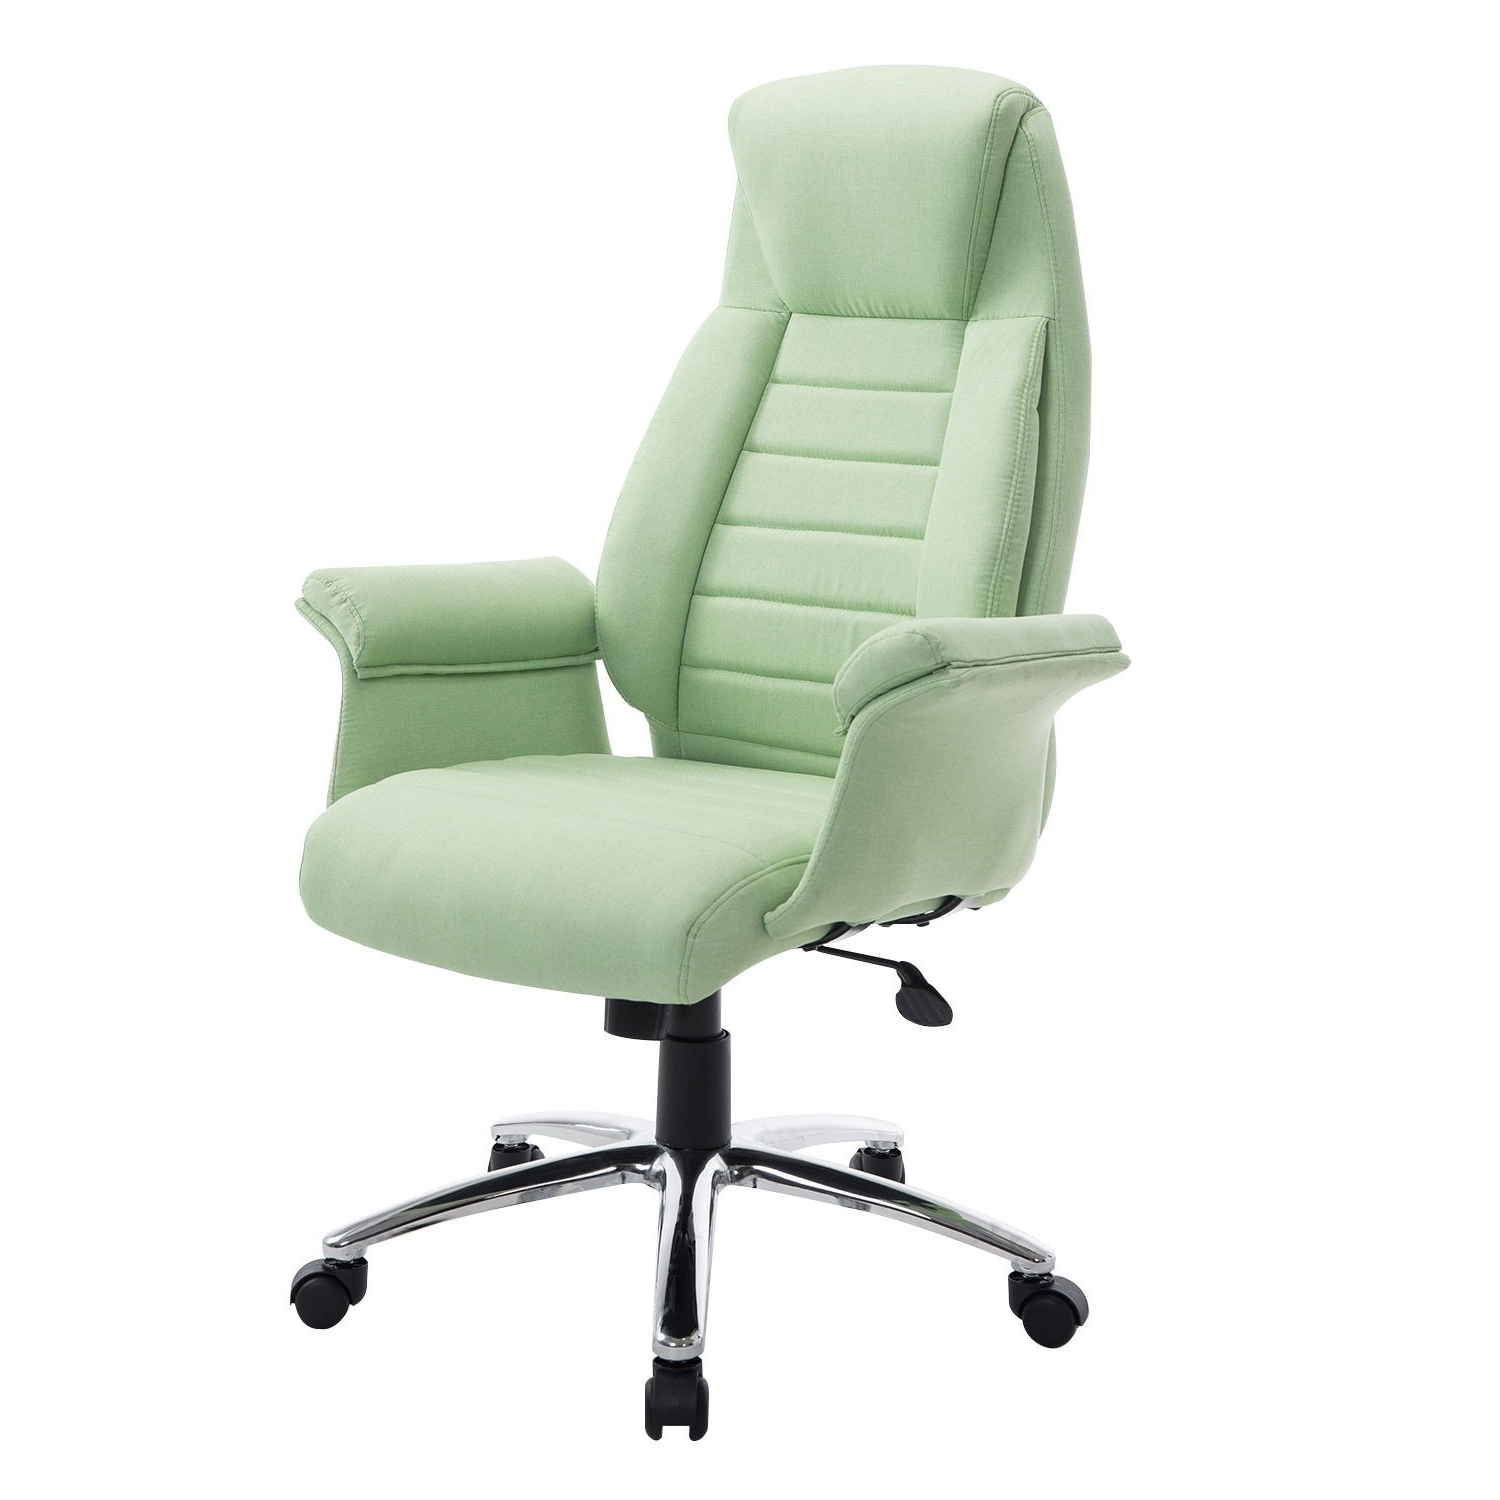 Fashionable Green Executive Office Chairs With Regard To Homcom Executive Heated Massage Office Chair – Cream (View 7 of 20)